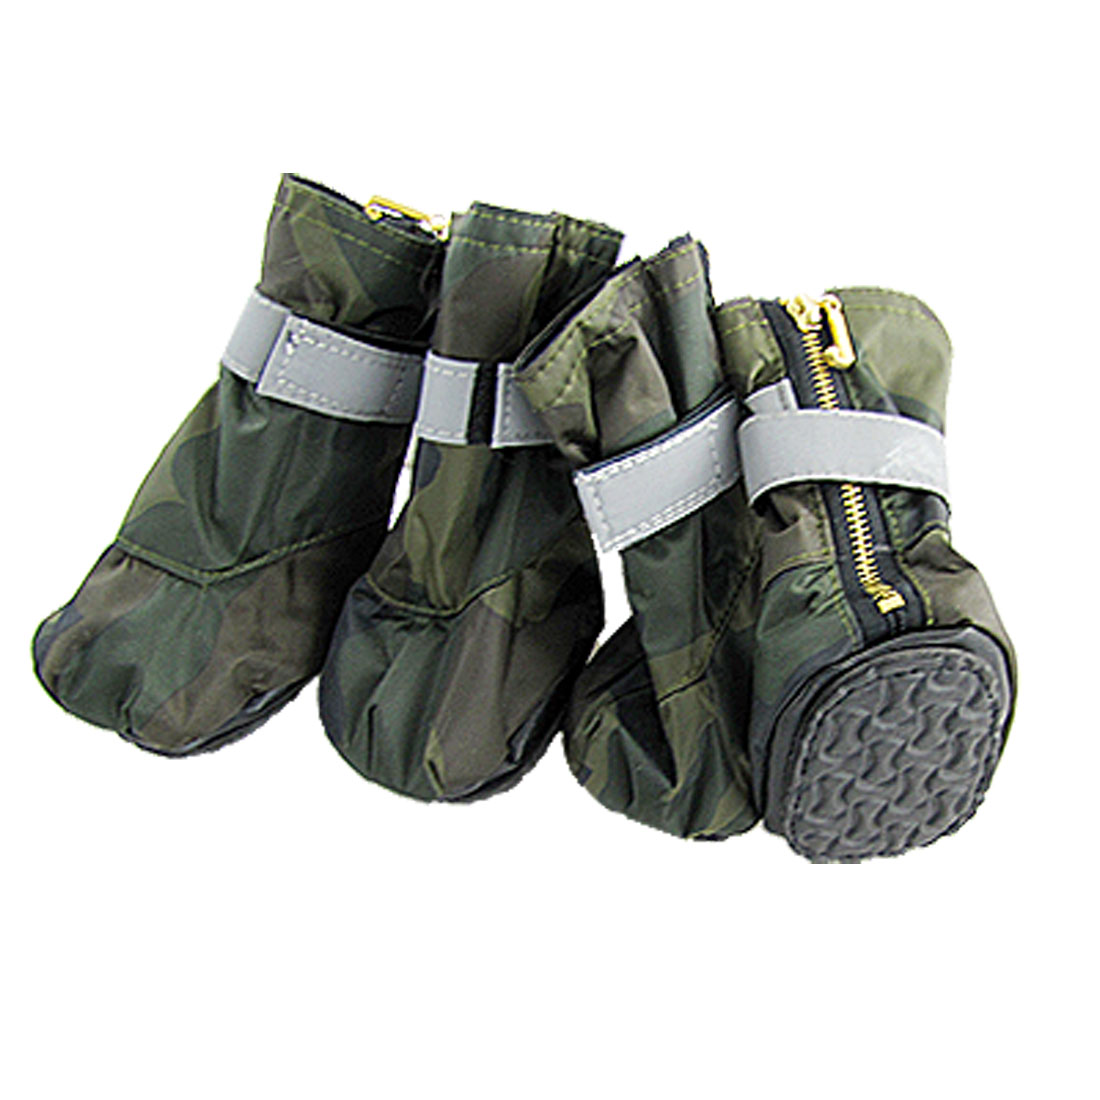 Camouflage Army Winter Protective Pet Boots Dog Shoes Large